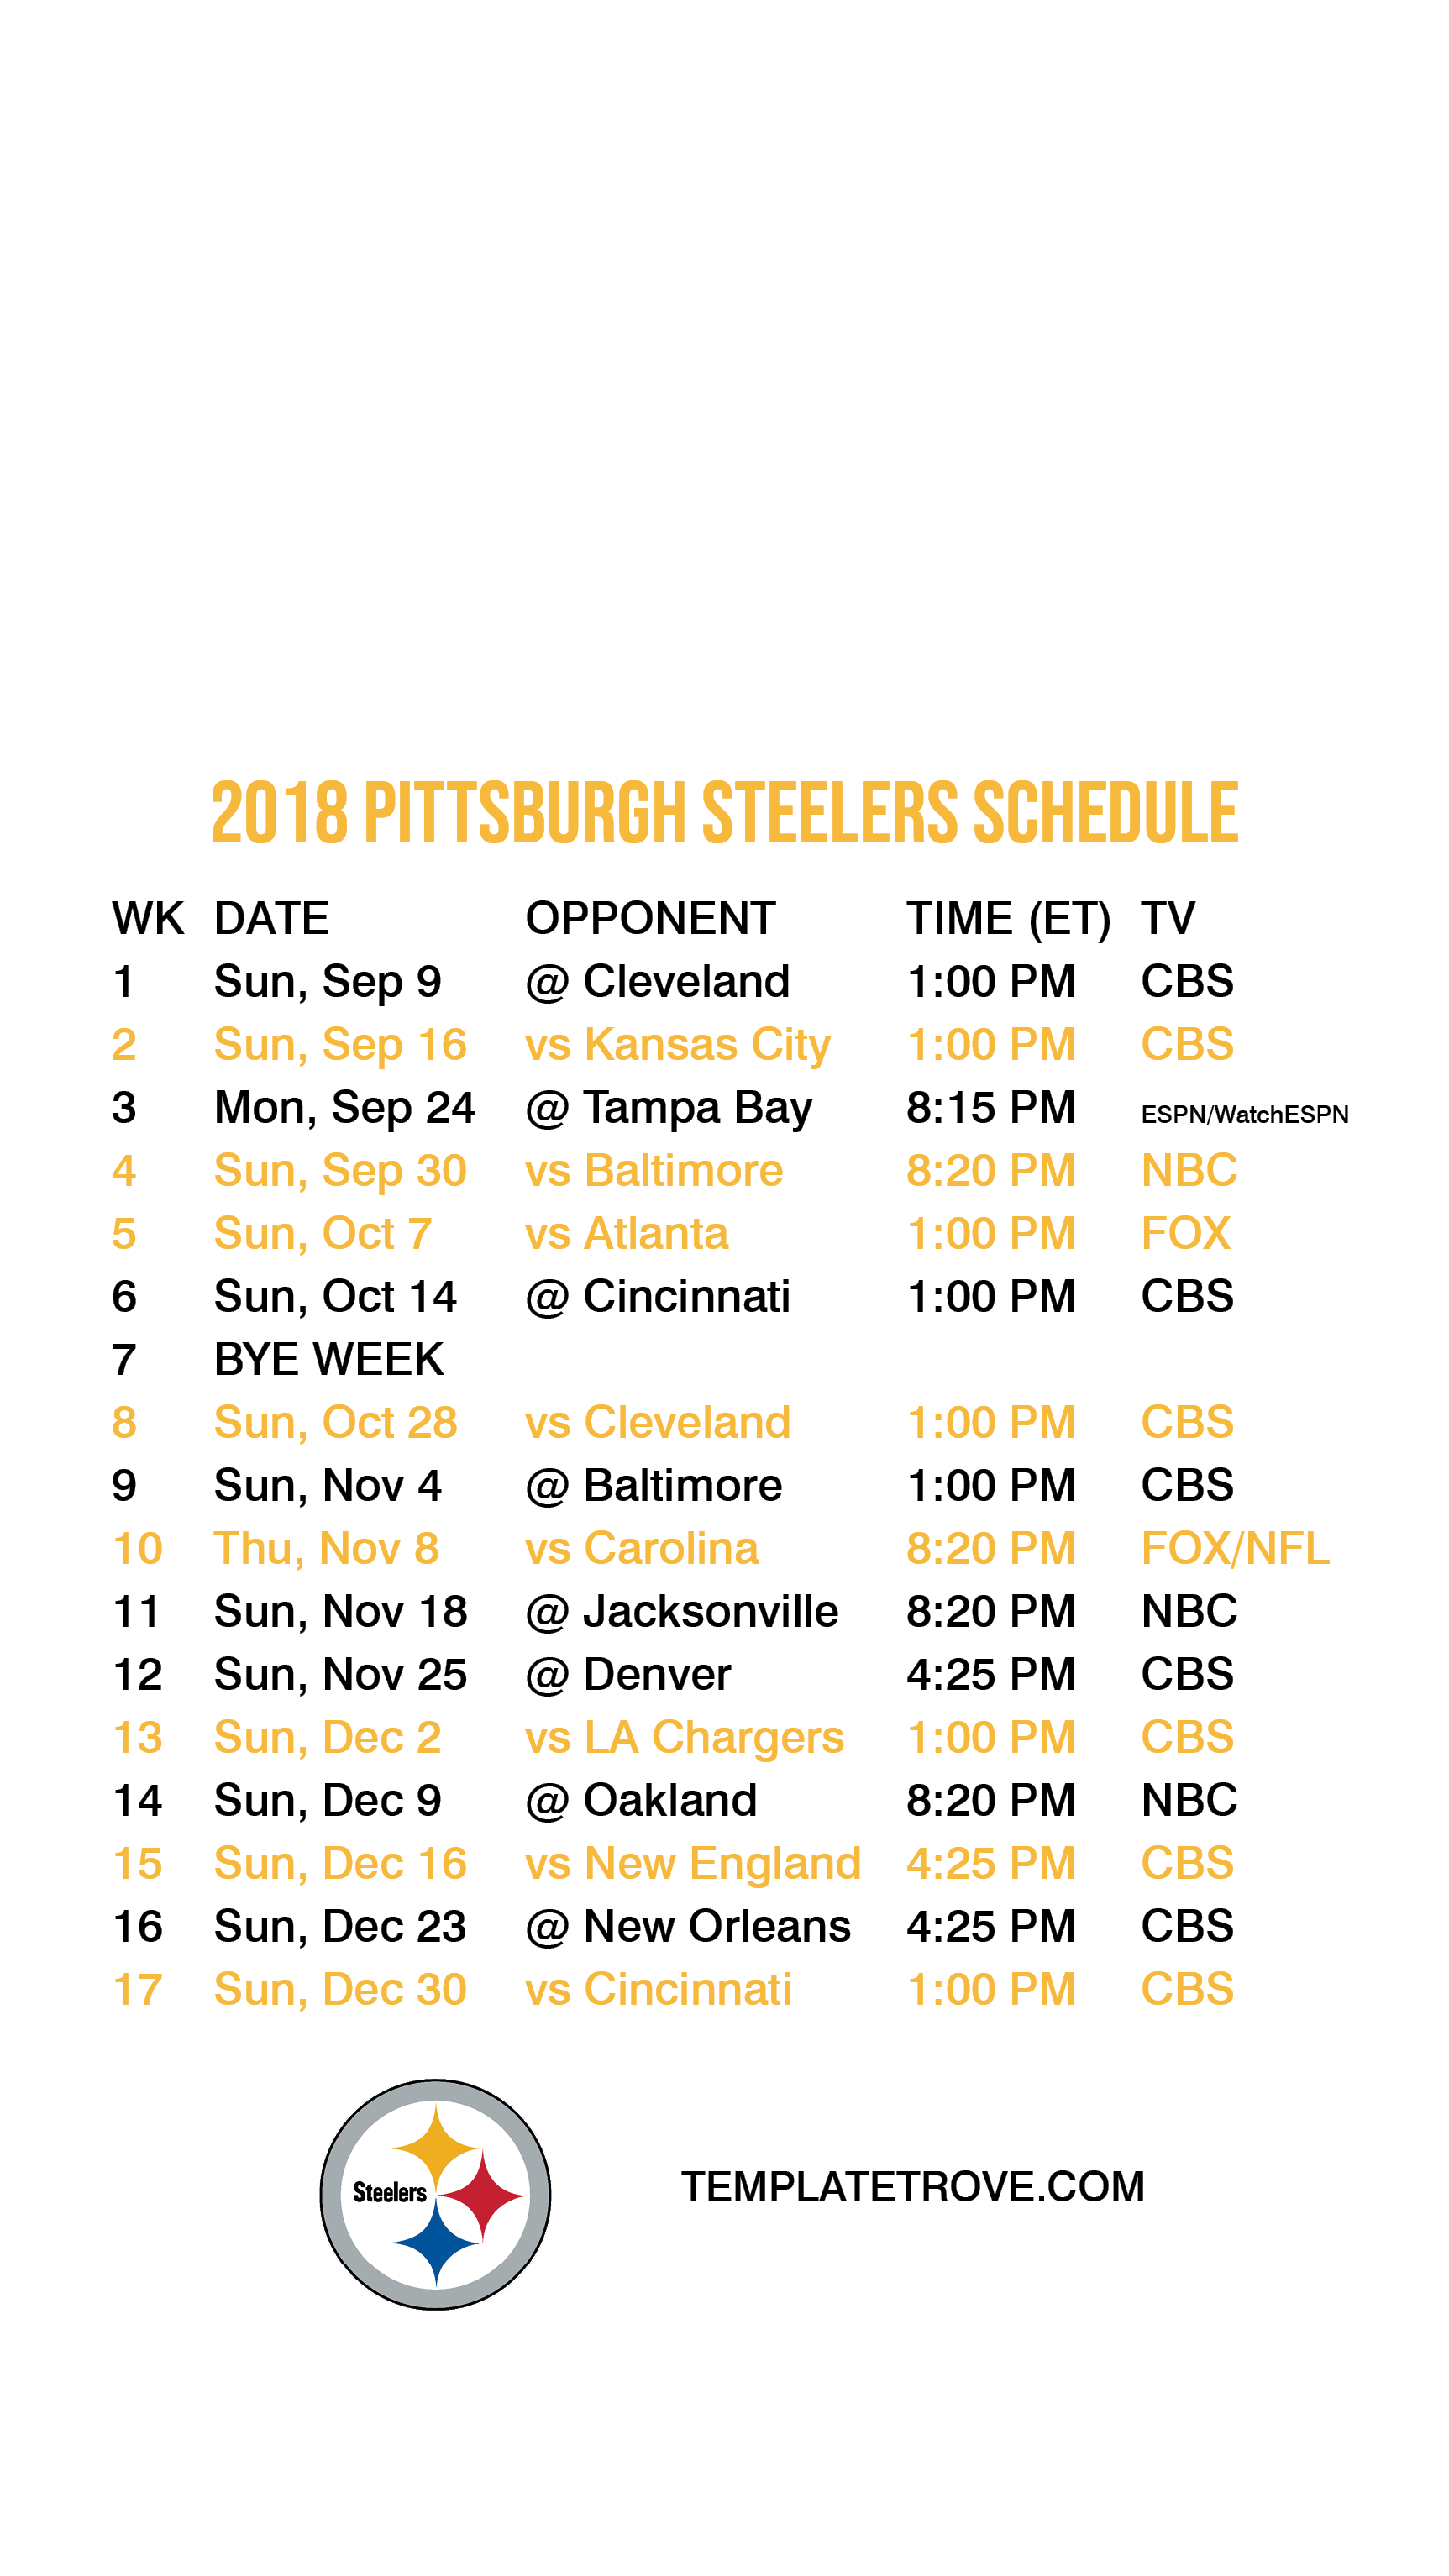 photograph regarding Pittsburgh Steelers Printable Schedule identified as 2018-2019 Pittsburgh Steelers Lock Display Timetable for